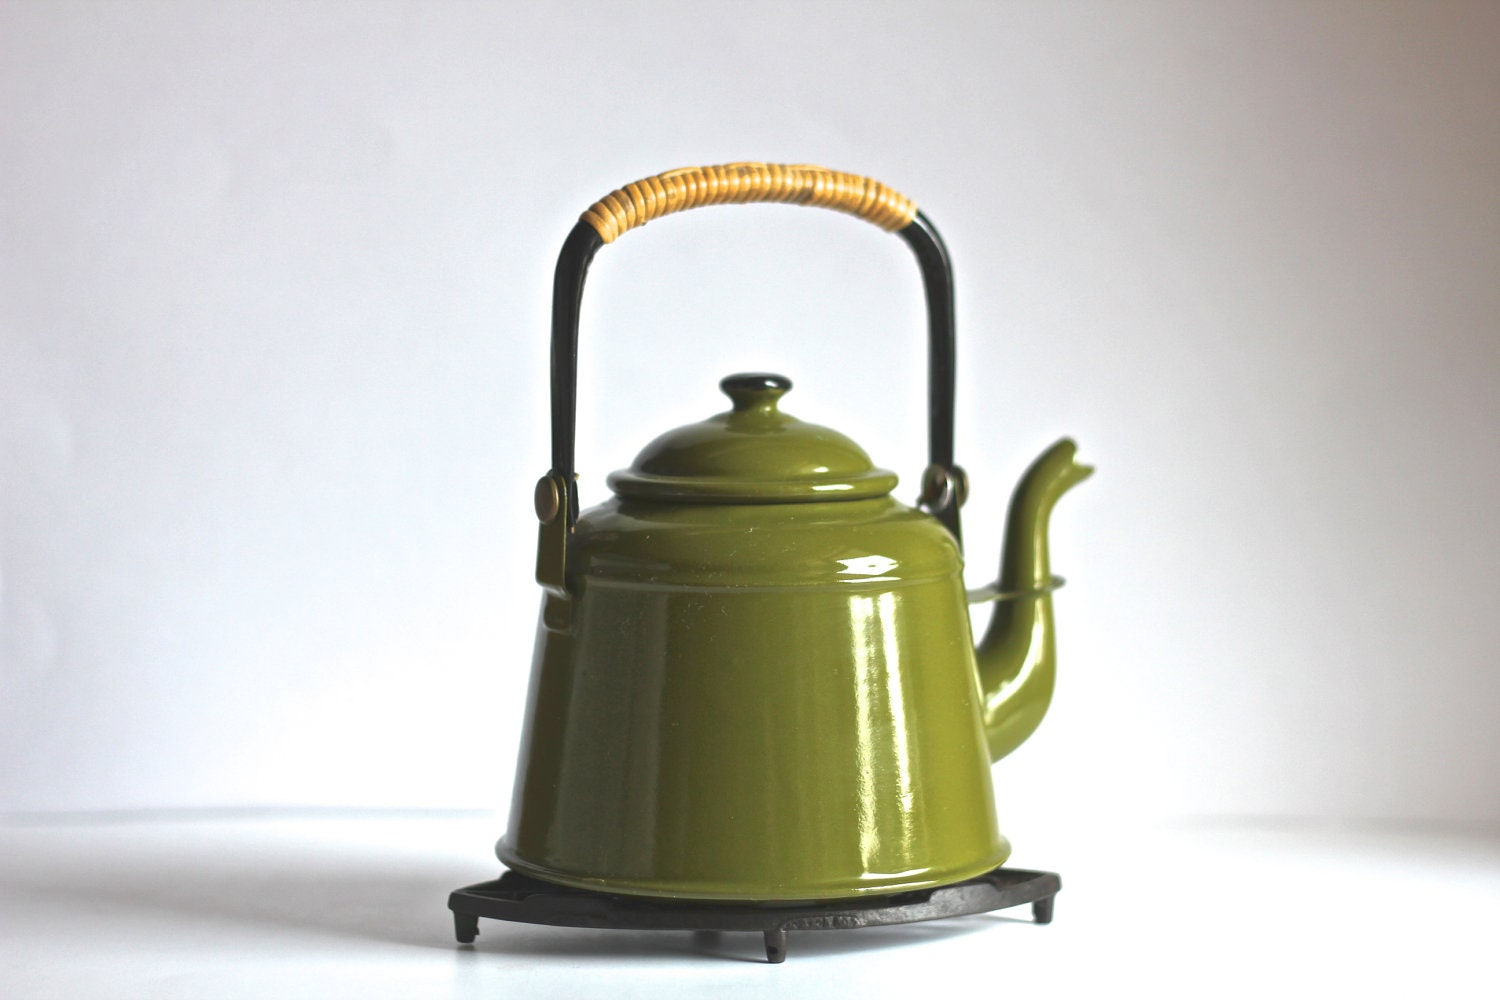 Olive Green Enamel Tea Pot Kettle - TheWrinklyElephant